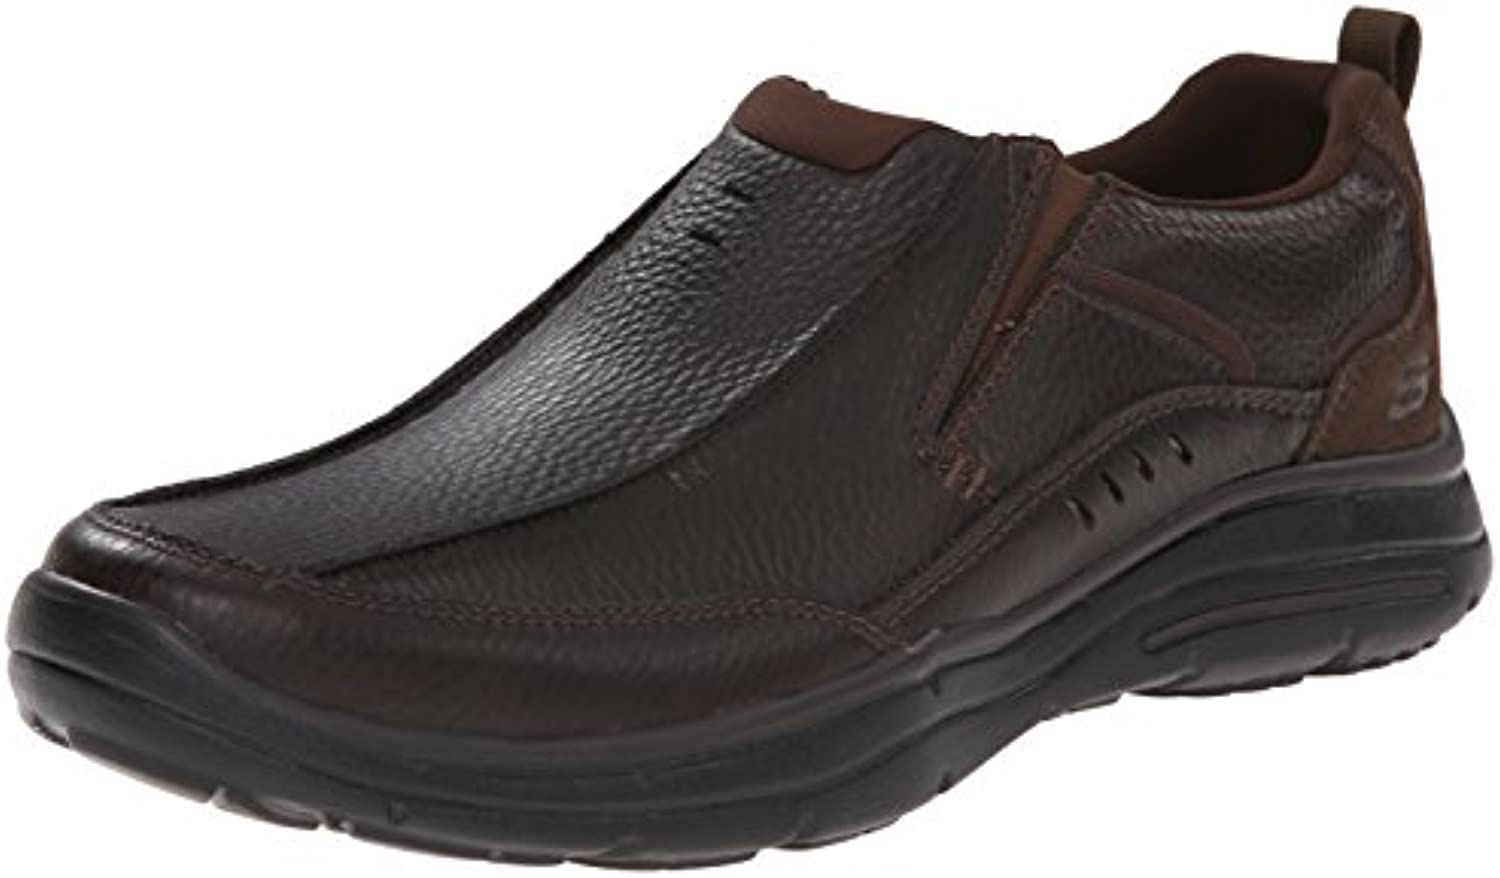 Skechers Usa Patines Razan Mocassins Slip-on